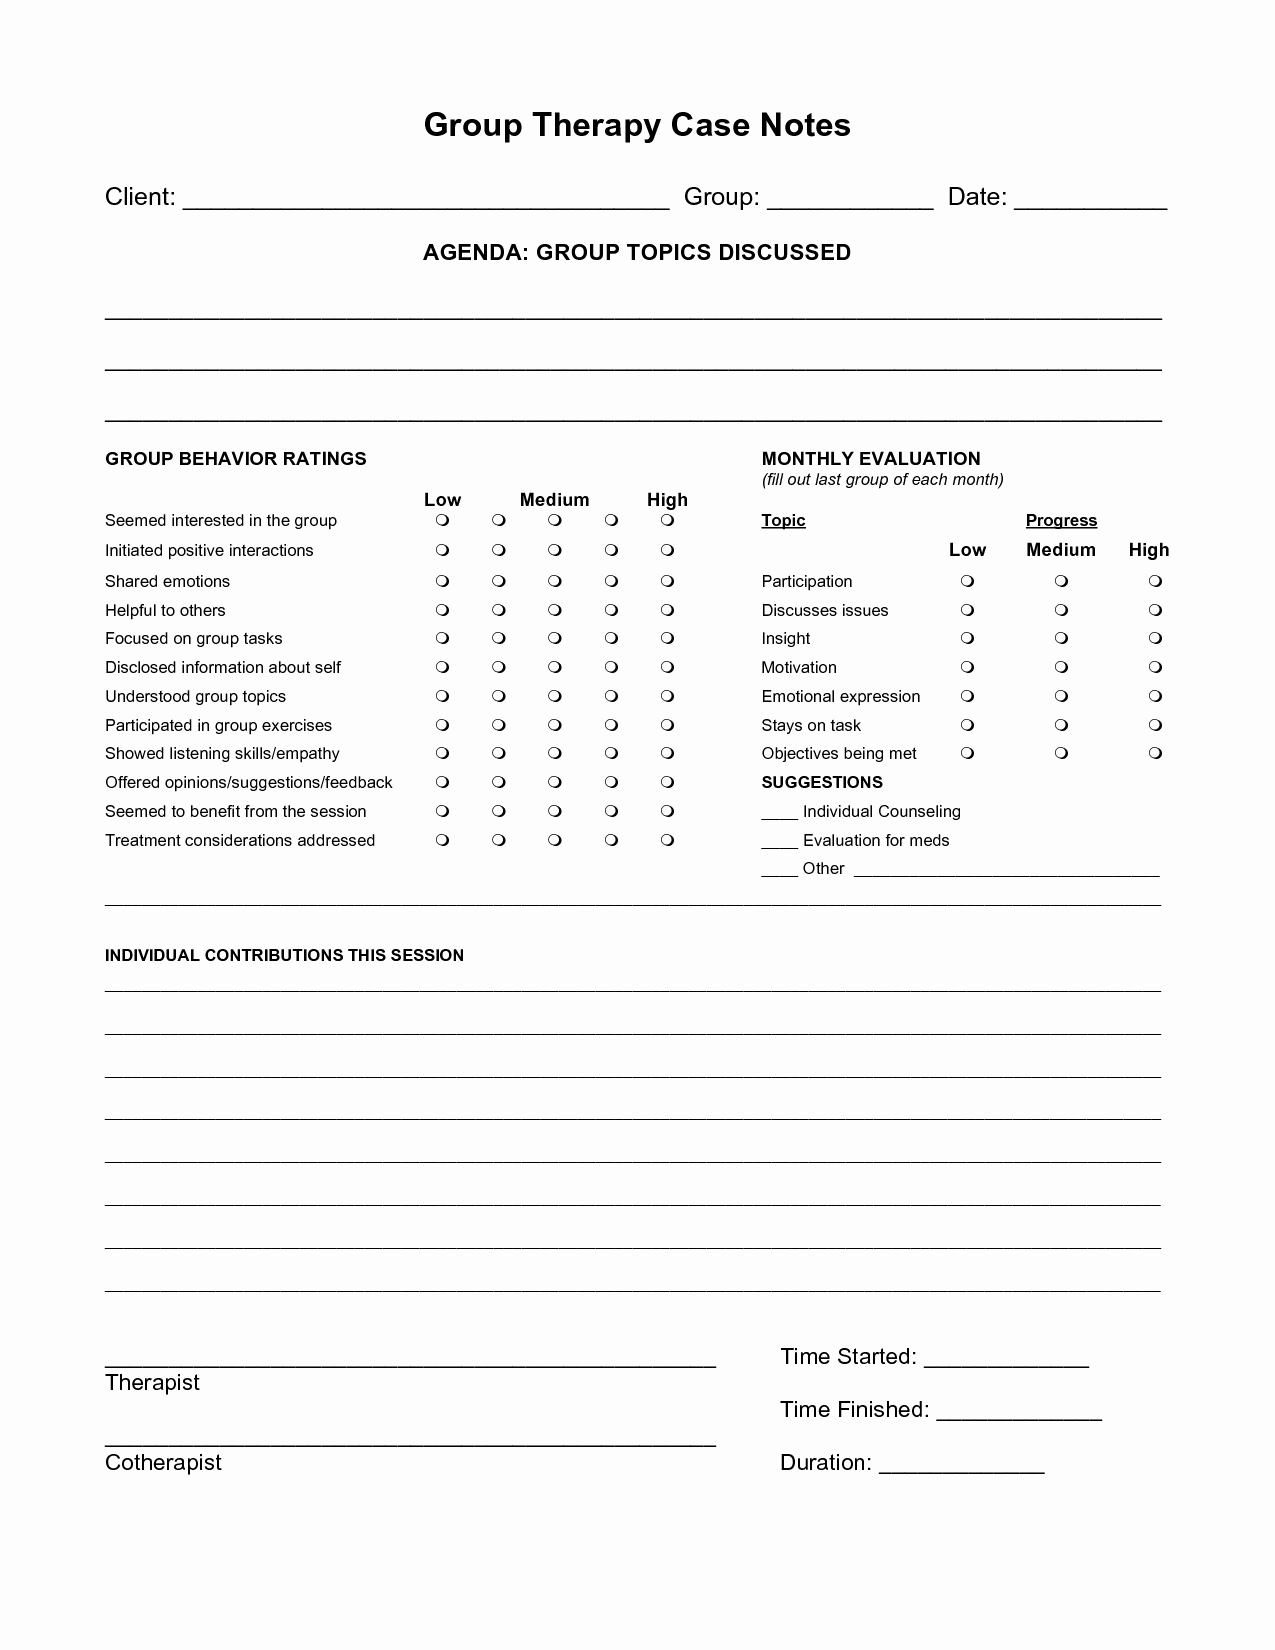 Psychotherapy Note Template Word Elegant Free Case Note Templates Group therapy Case Notes